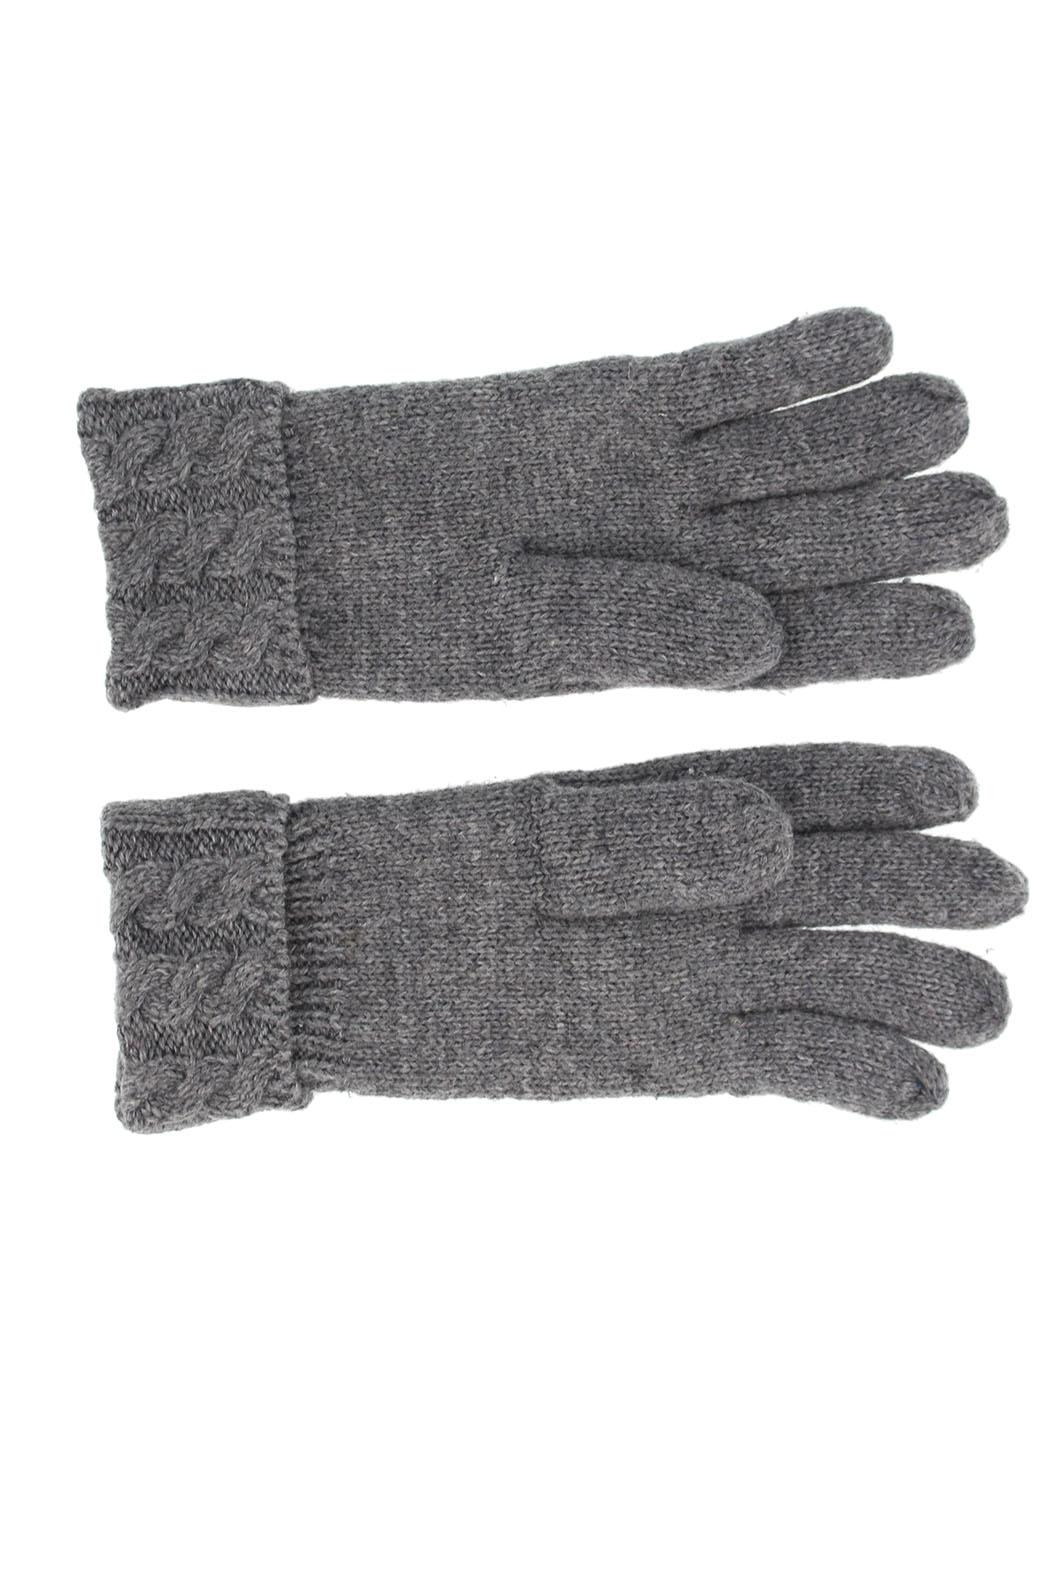 Violet & Virtue Cable Knit Gloves - Front Full Image